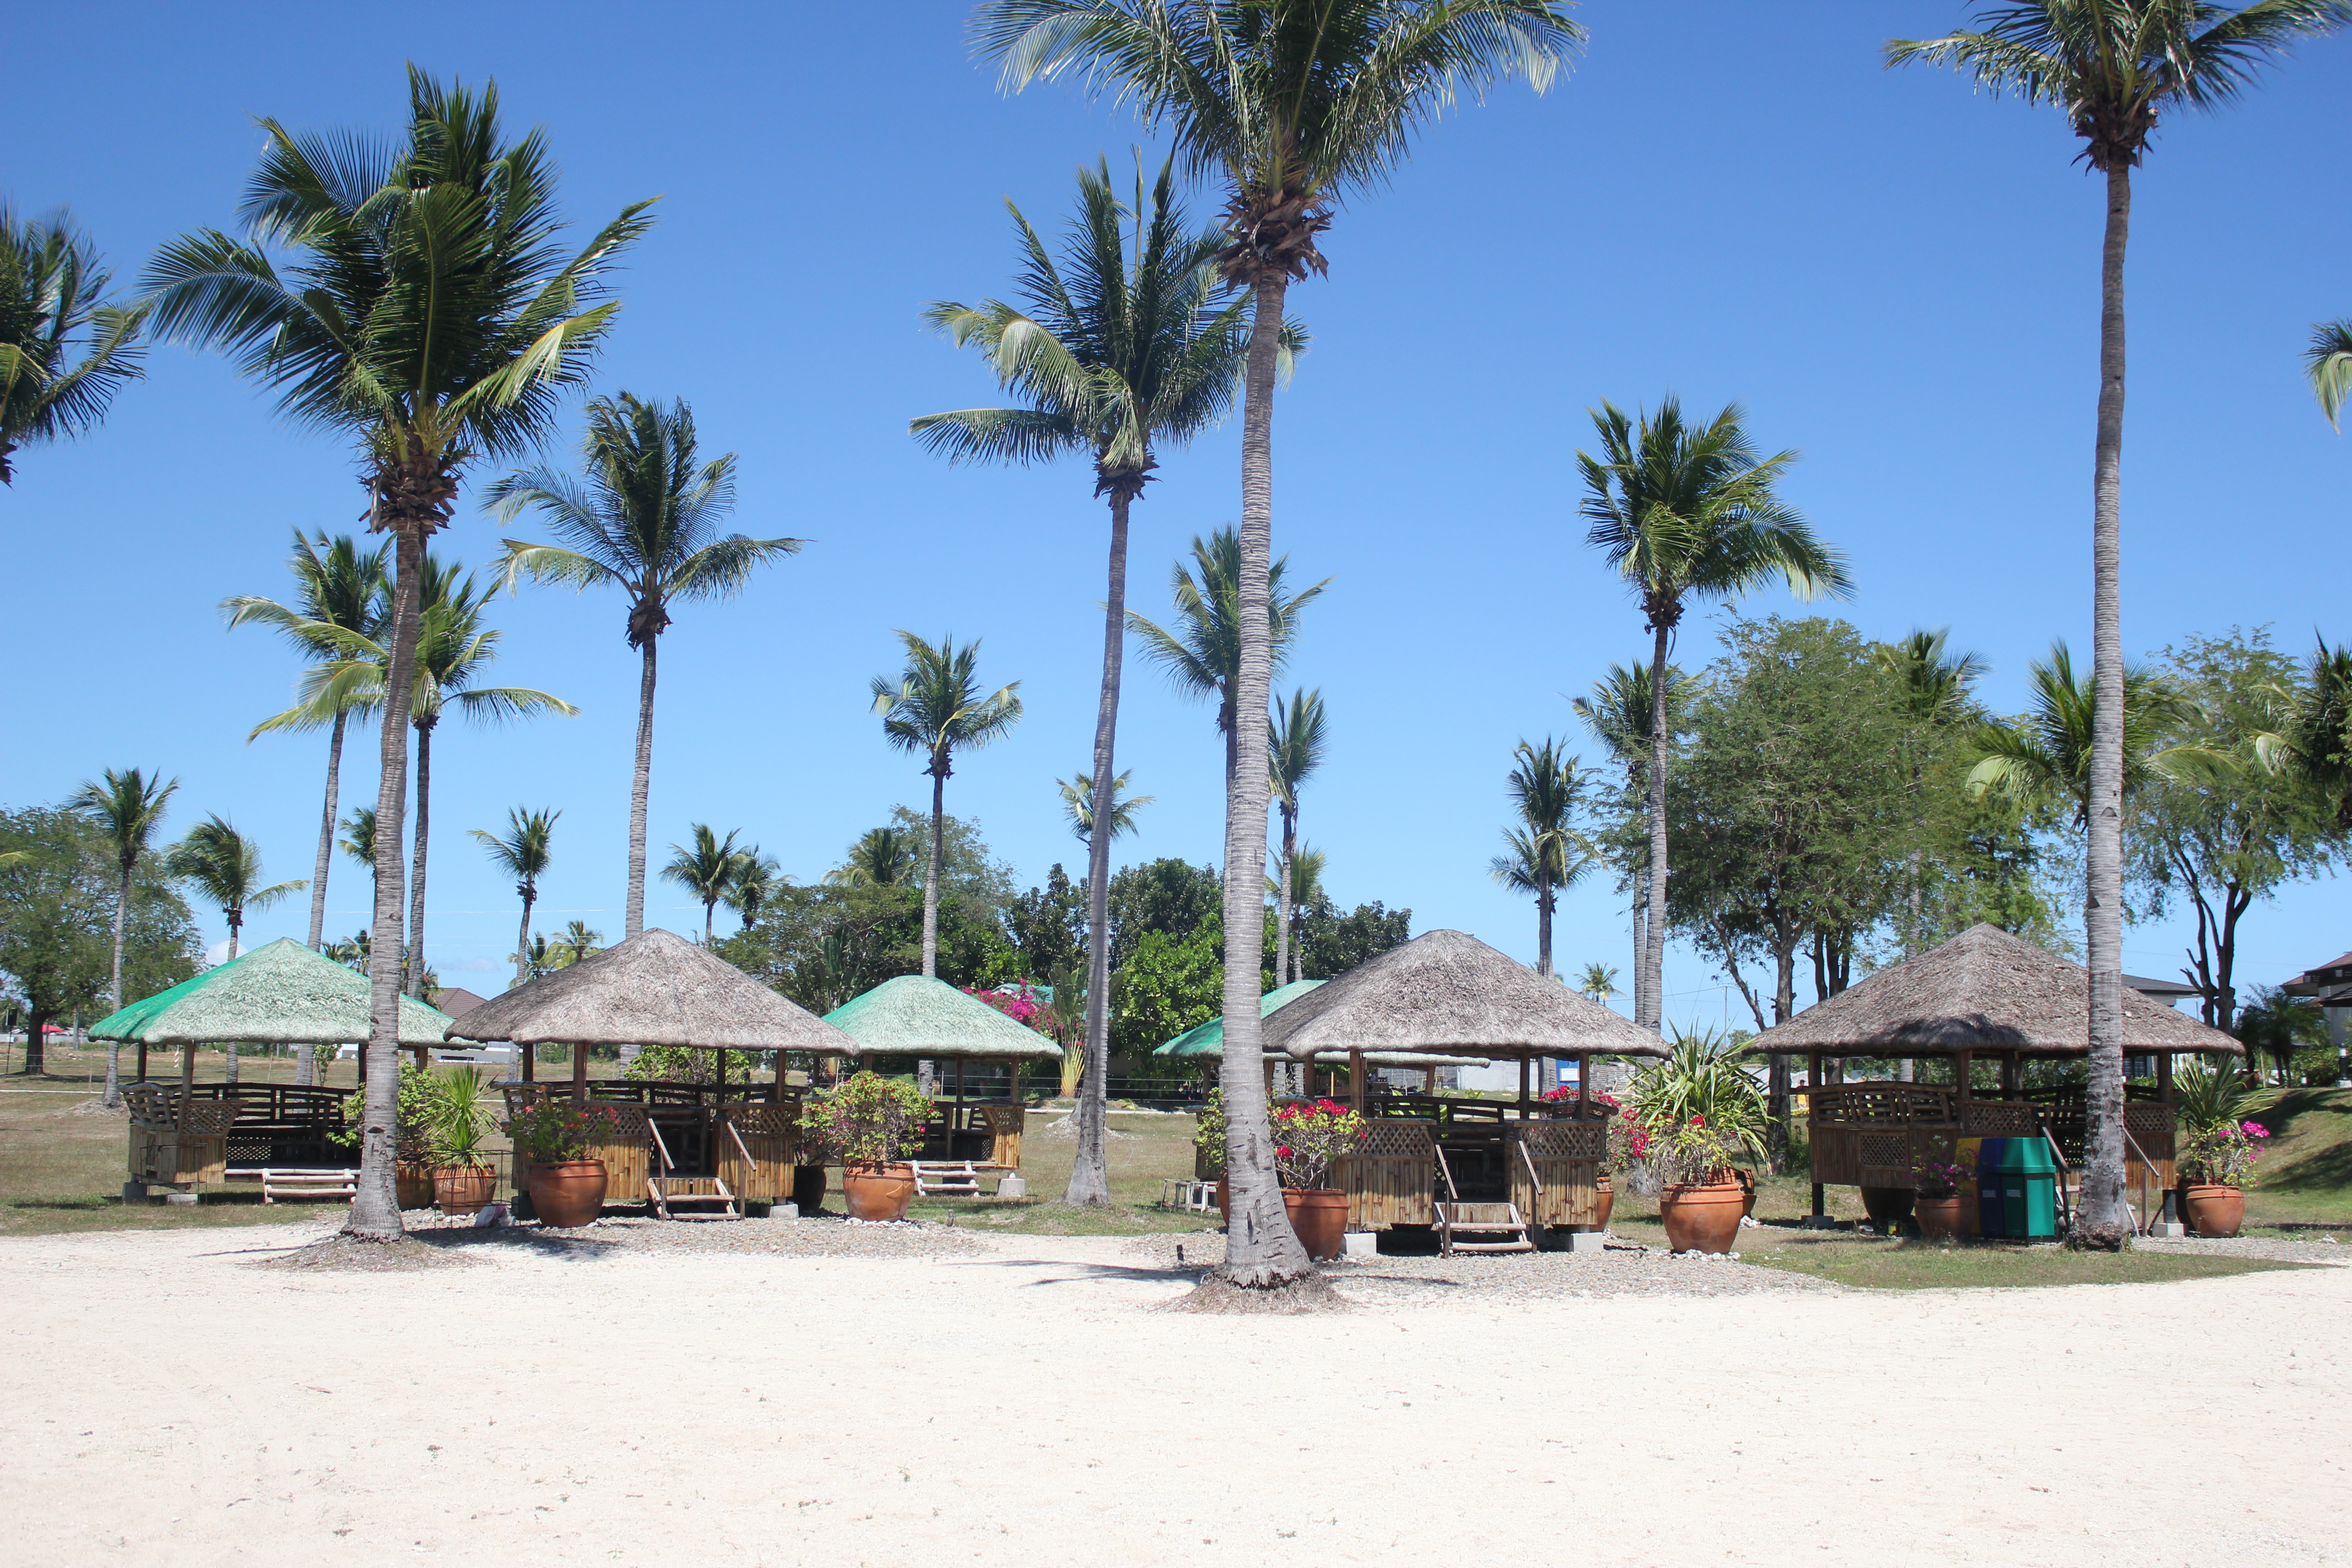 Huts by the beach in Tamarind Cove, Porto Laiya